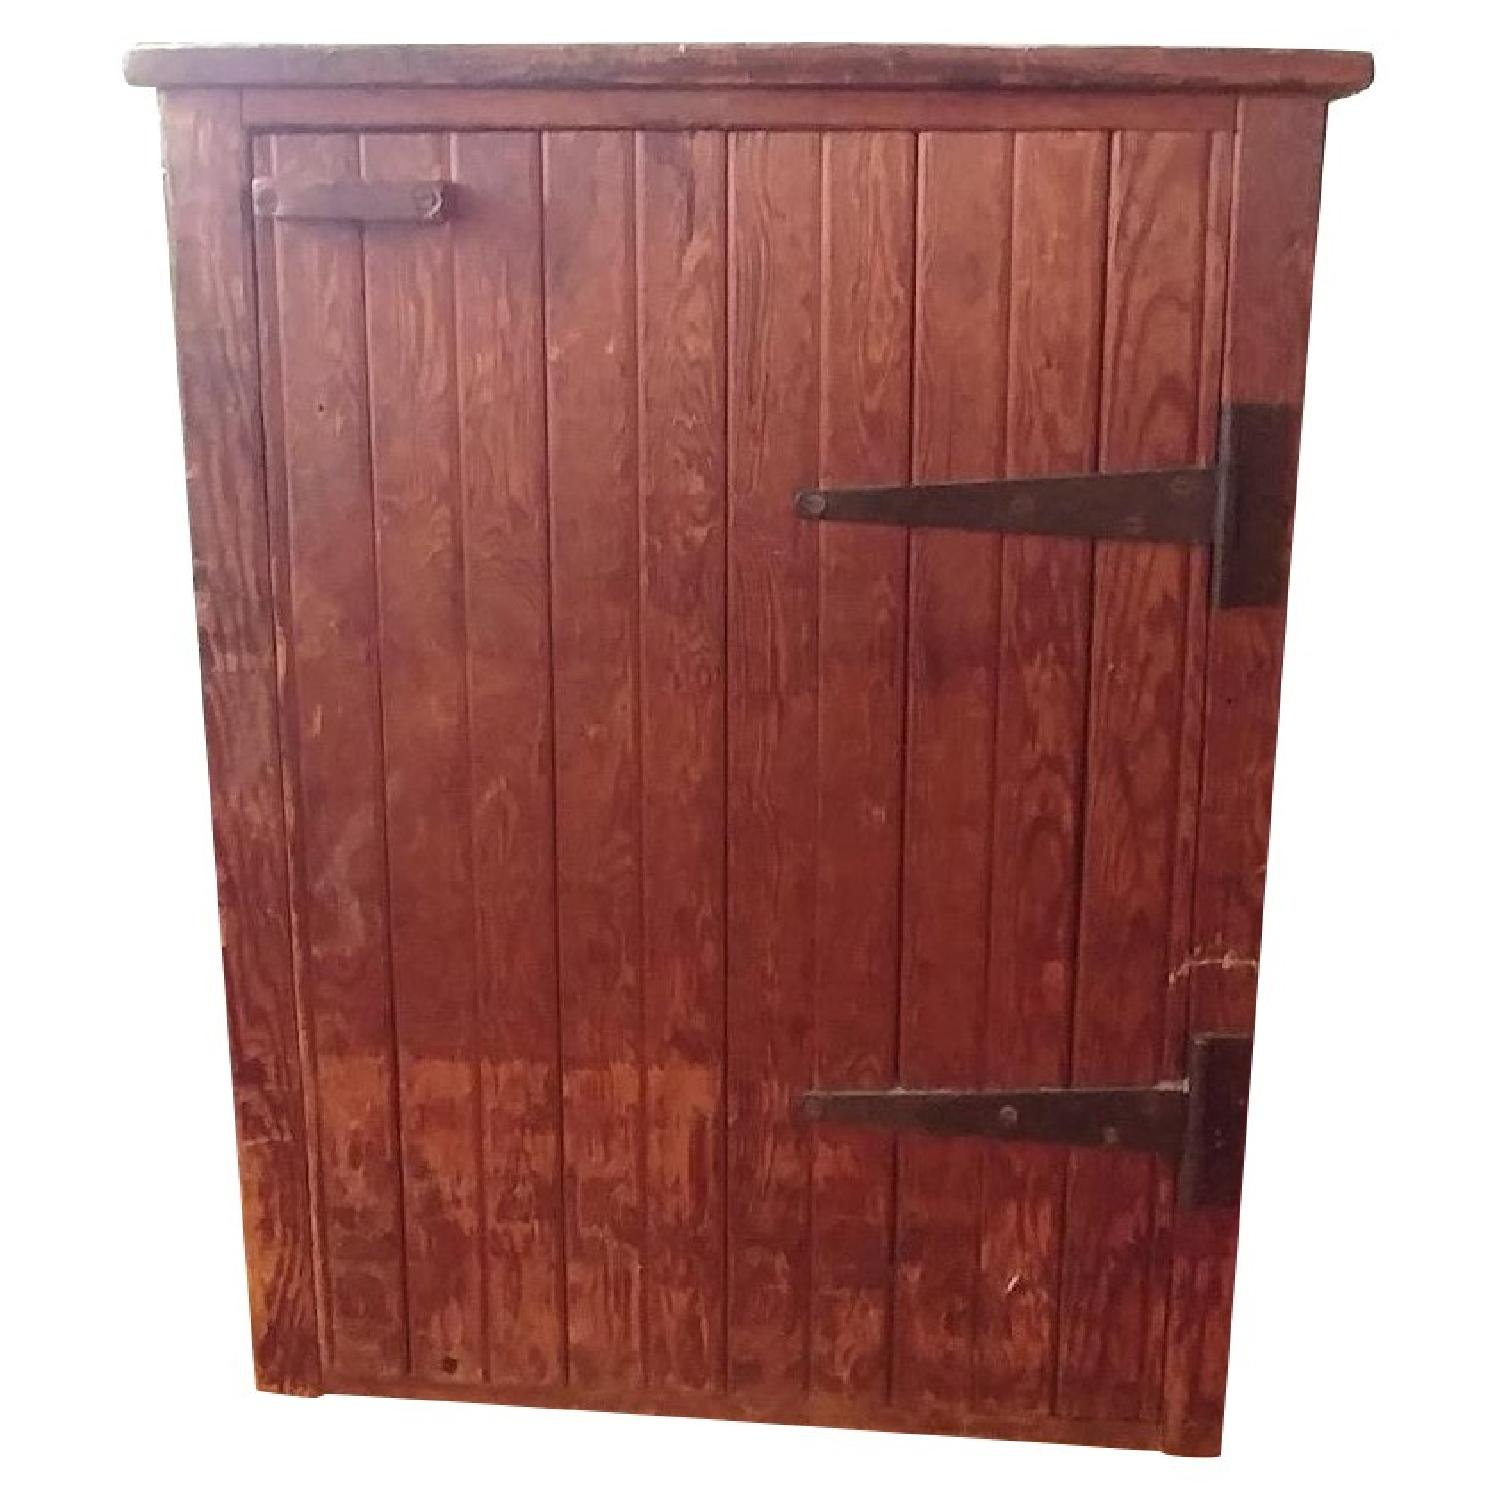 Early 1800s Primitive Storage Cabinet